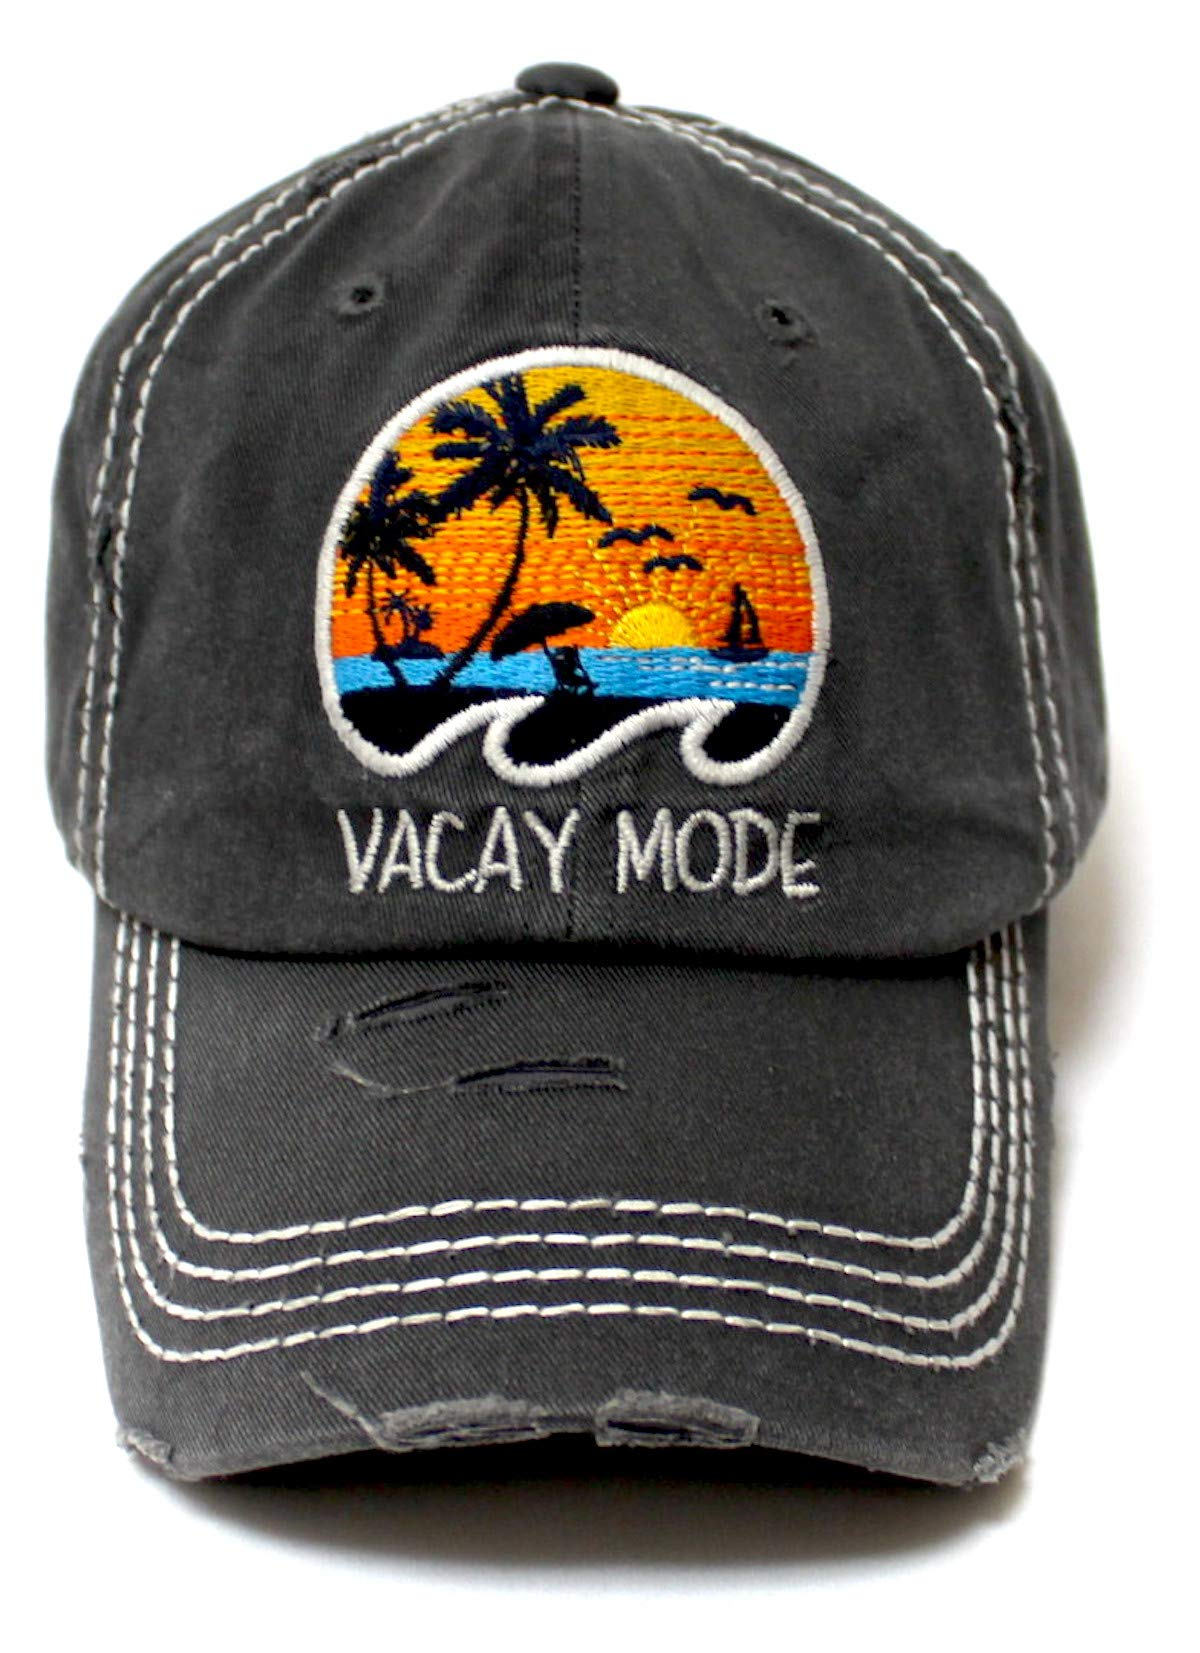 Classic Distressed Adjustable Baseball Cap Vacay Mode Surf, Sun & Ocean Wave Monogram Hat, Vintage Black - Caps 'N Vintage